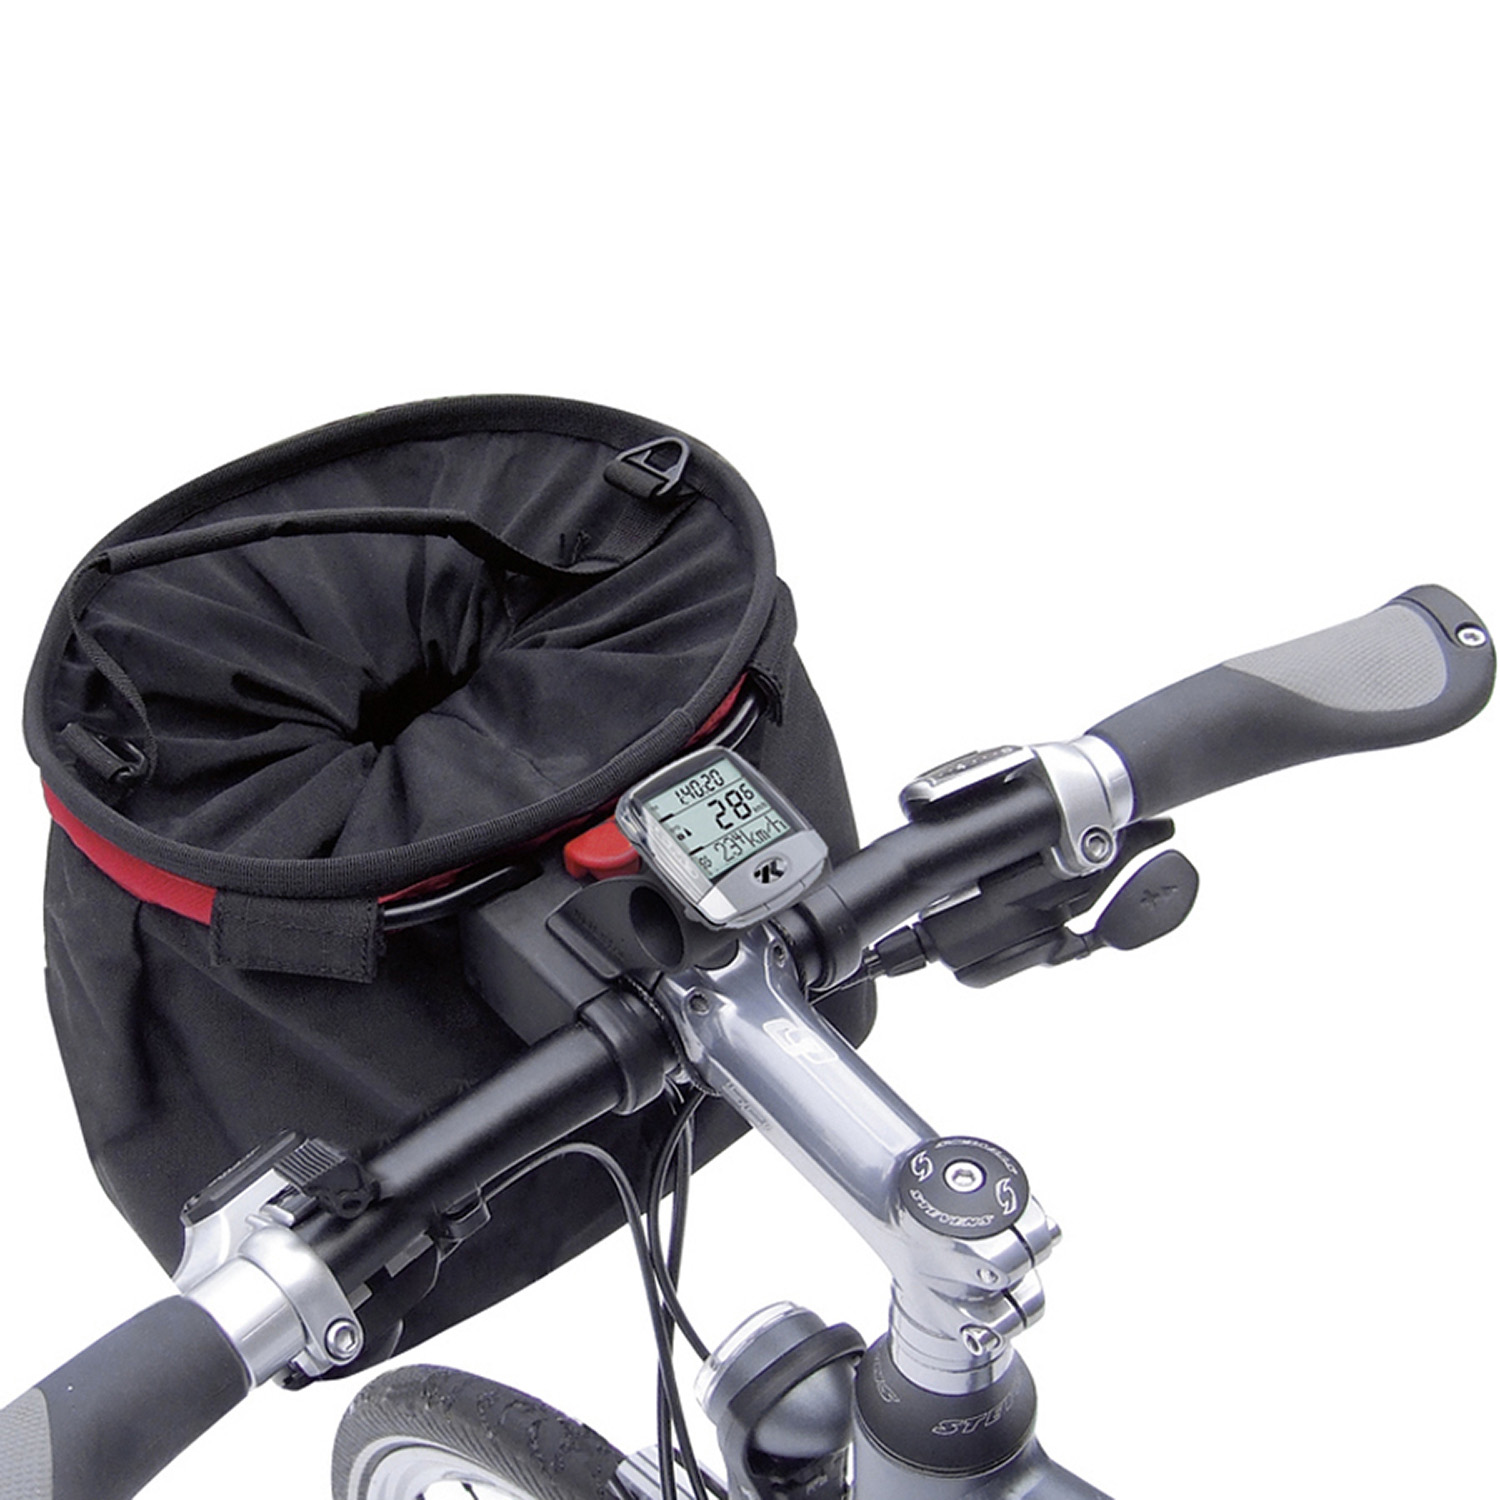 MultiClip, more space on handlebar, combinable with Handlebar Adapter